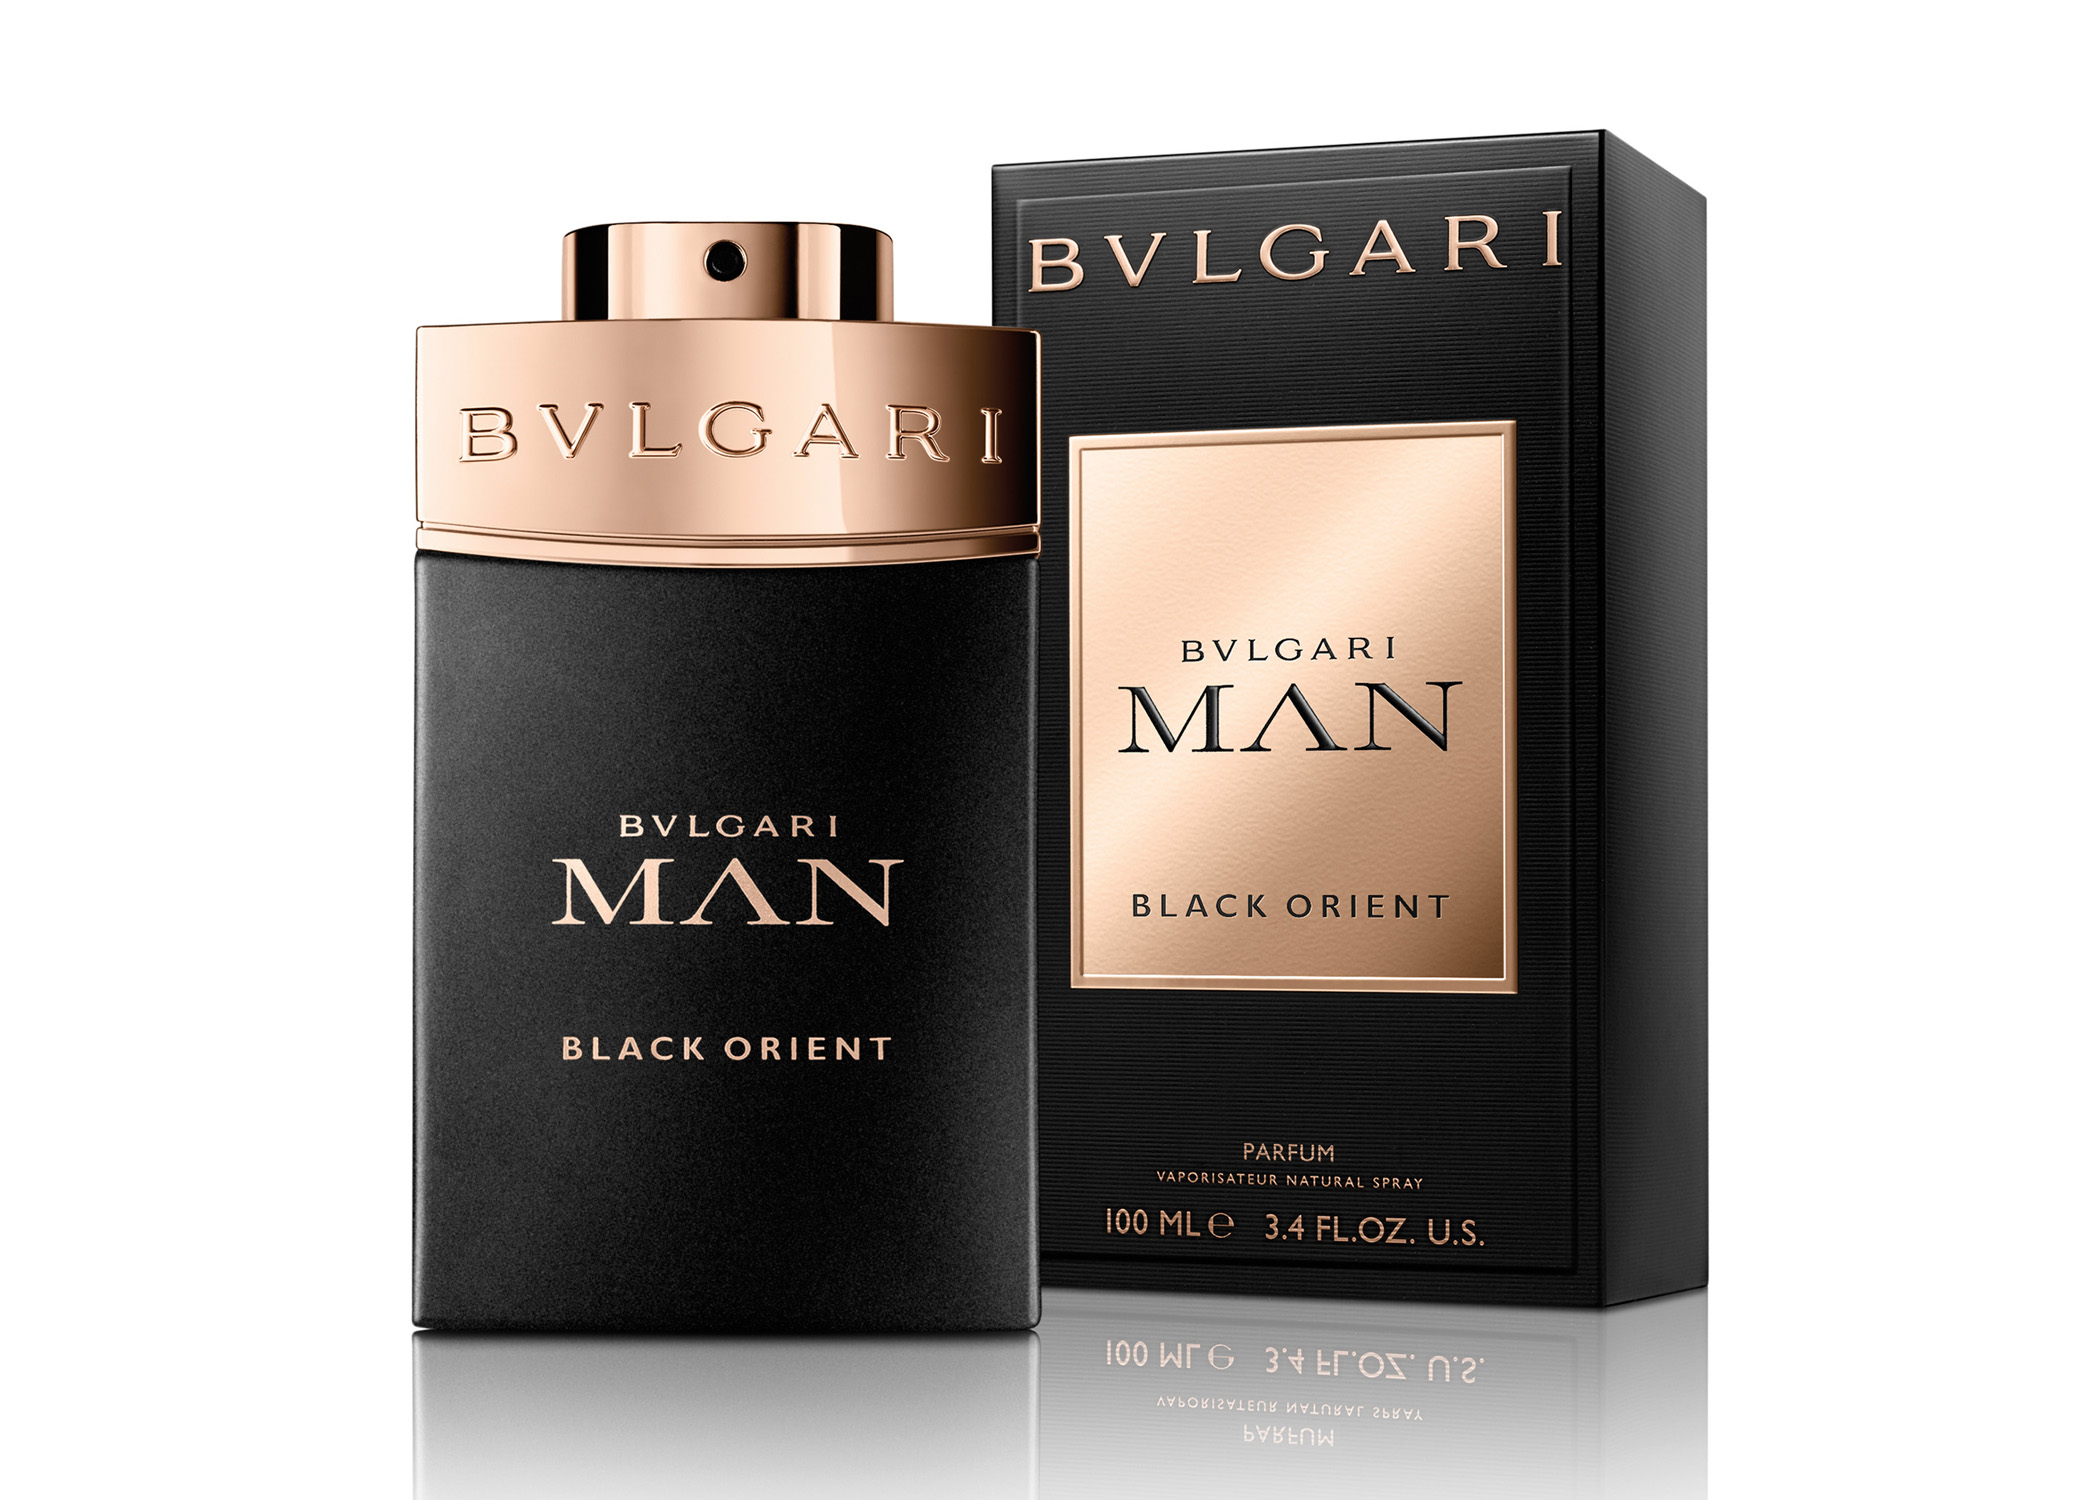 Bvlgari Man Black Orient, Parfum 100ml